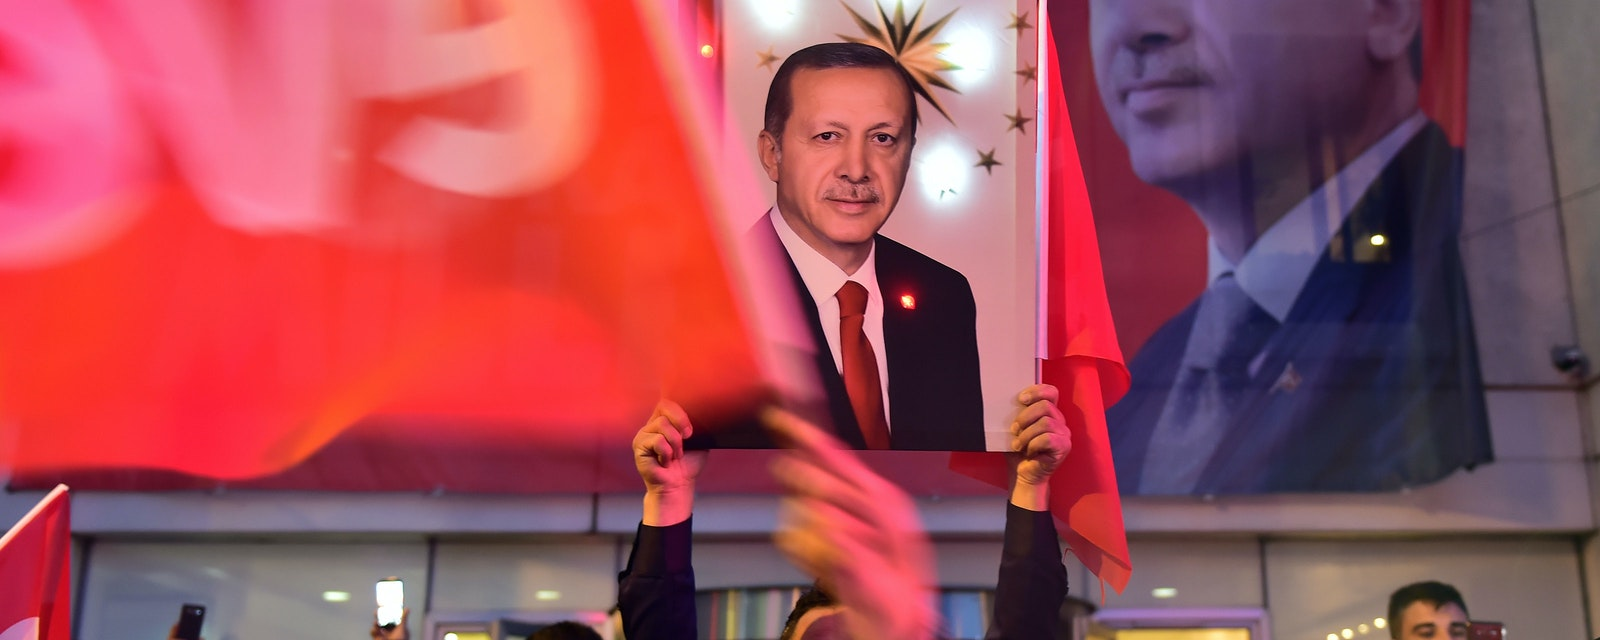 AK Party and Erdogan supporters congratulate the results of the referendum